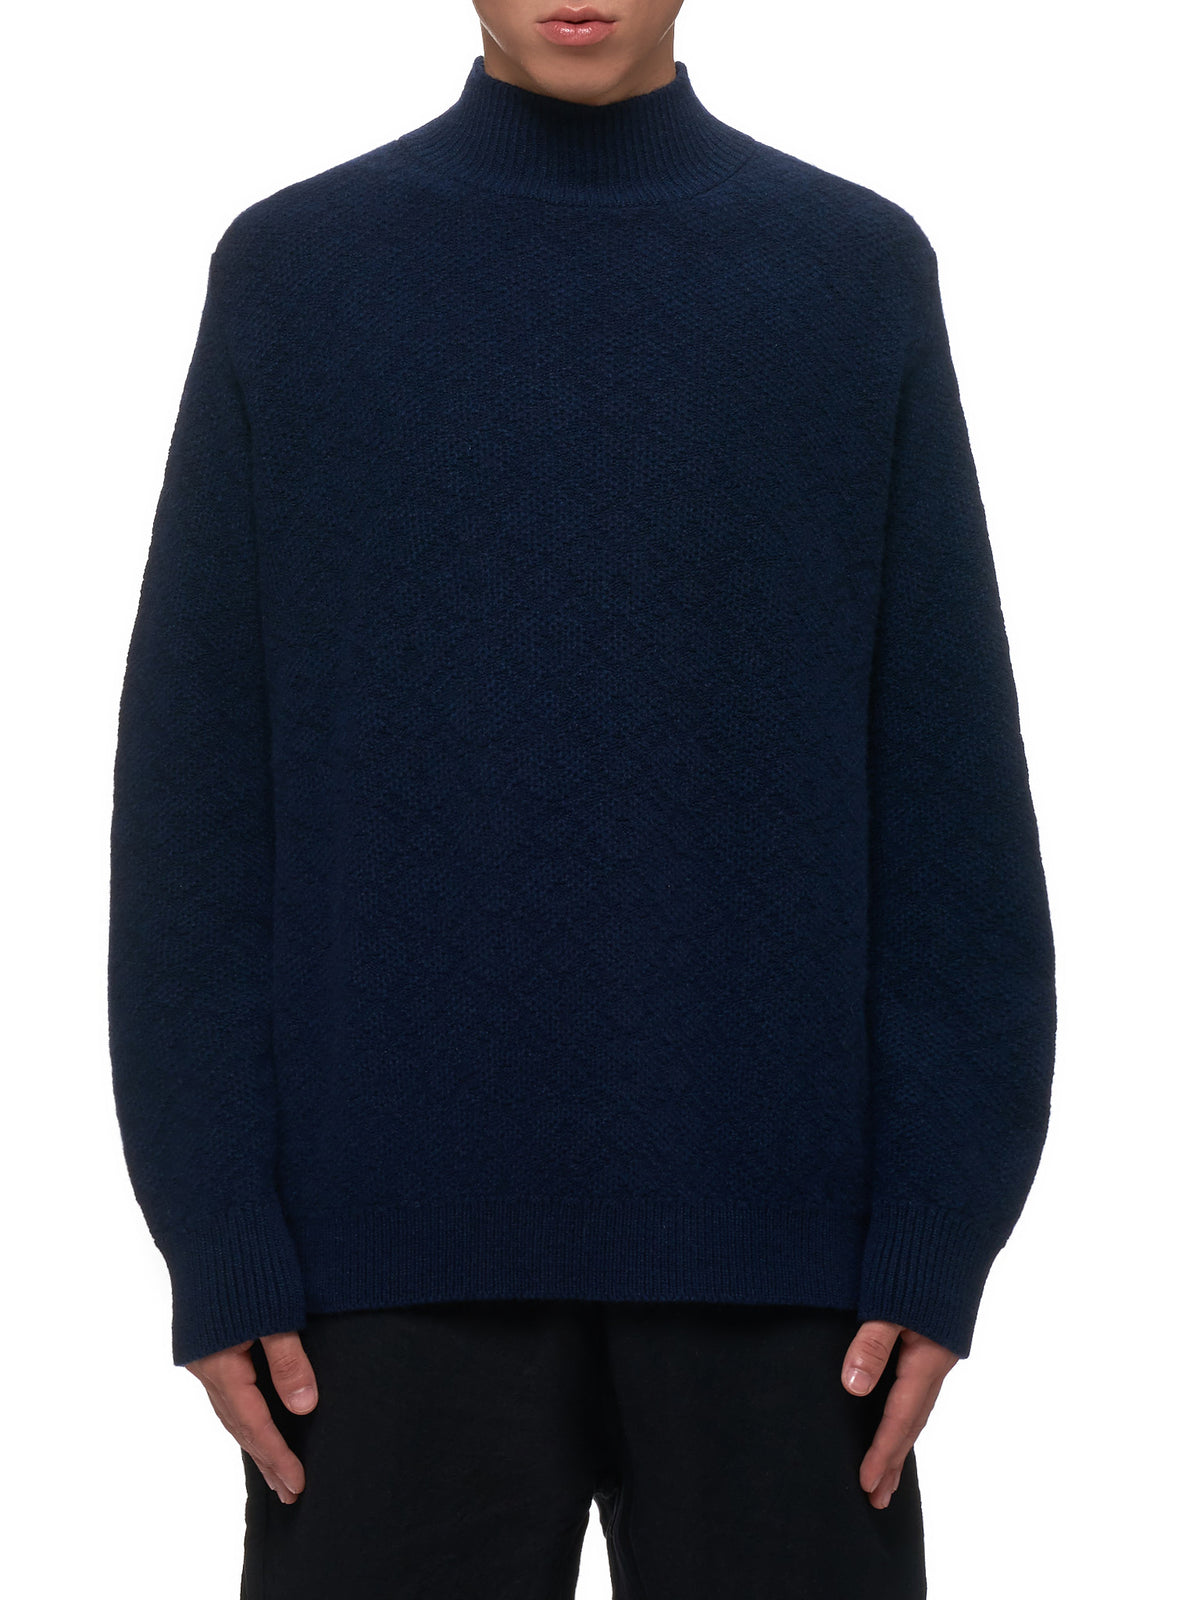 Knitted Sweater (S13008-NAVY)